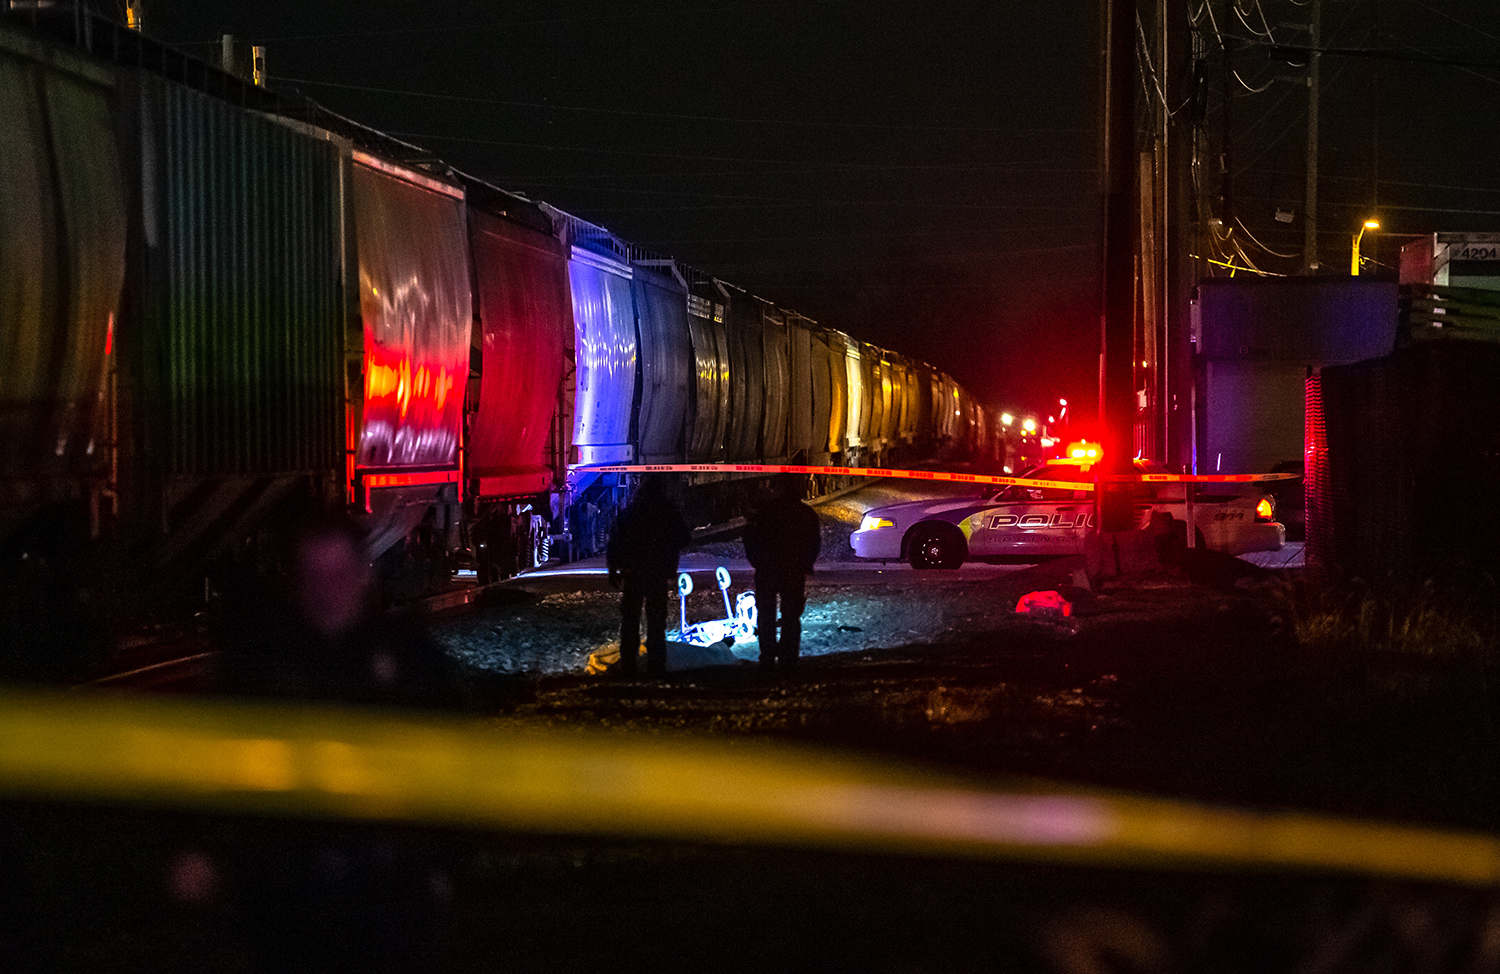 Springfield Police Officers work the scene of an accident reportedly involving a pedestrian versus a train at the intersection of North Eleventh Street and East Jefferson Street, Wednesday, Feb. 13, 2019, in Springfield, Ill. [Justin L. Fowler/The State Journal-Register]